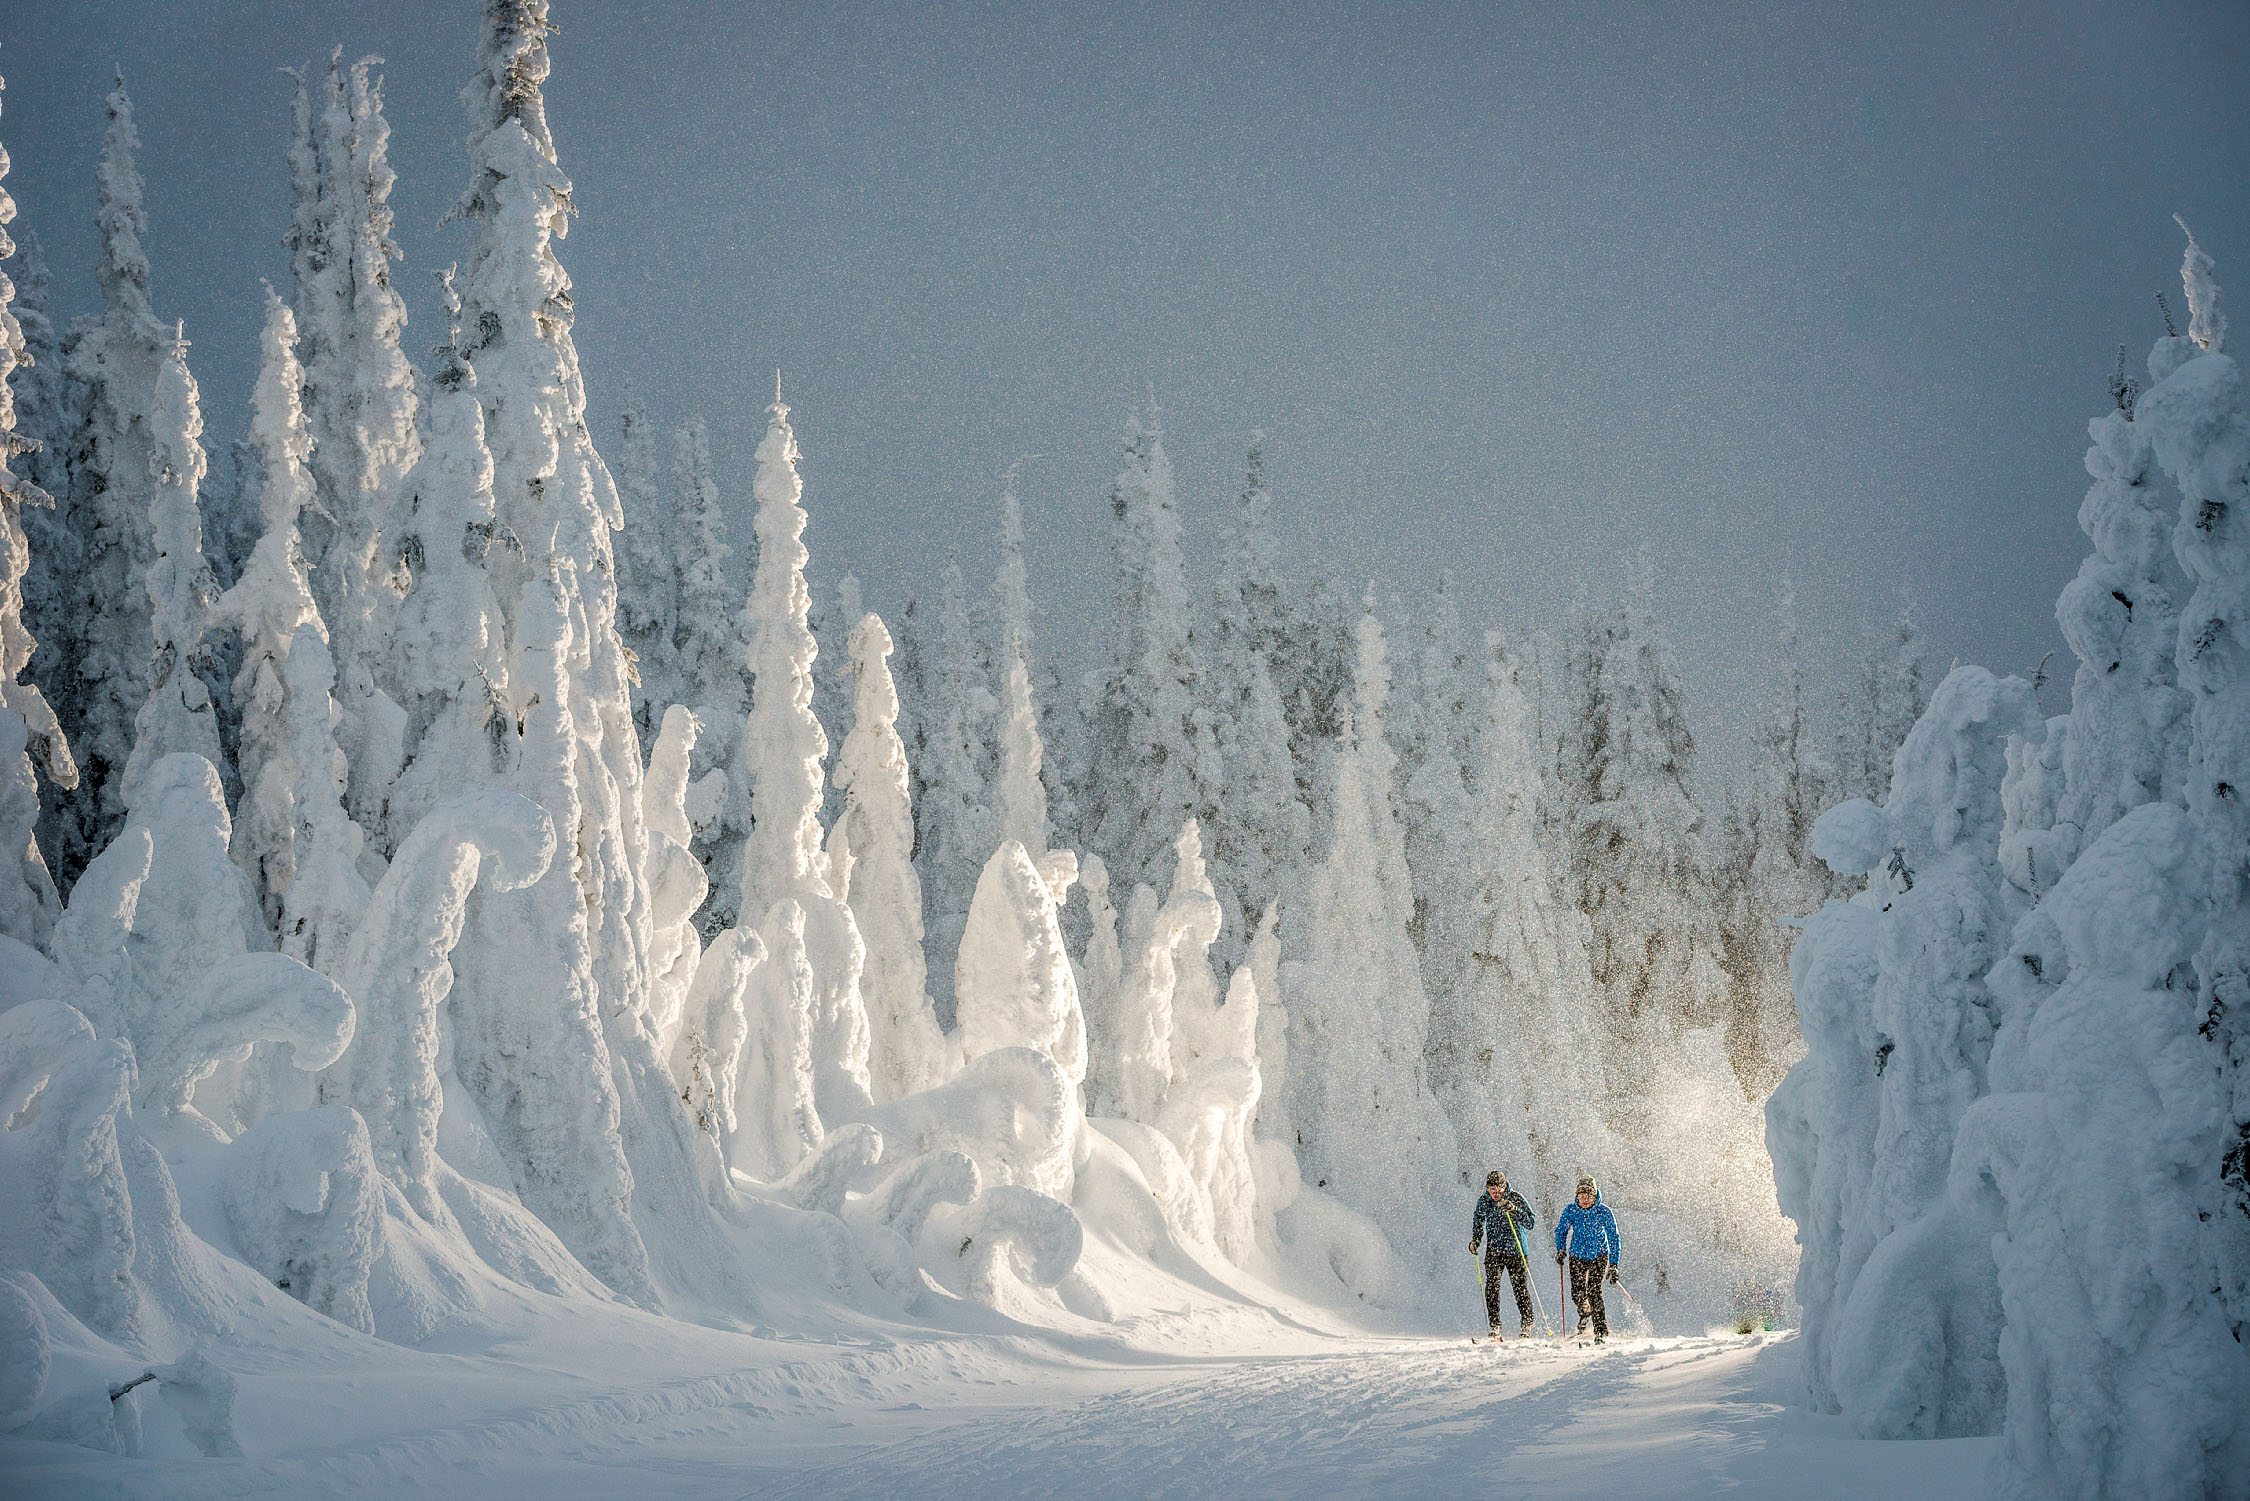 Cross-country skiing at SilverStar Mountain Resort